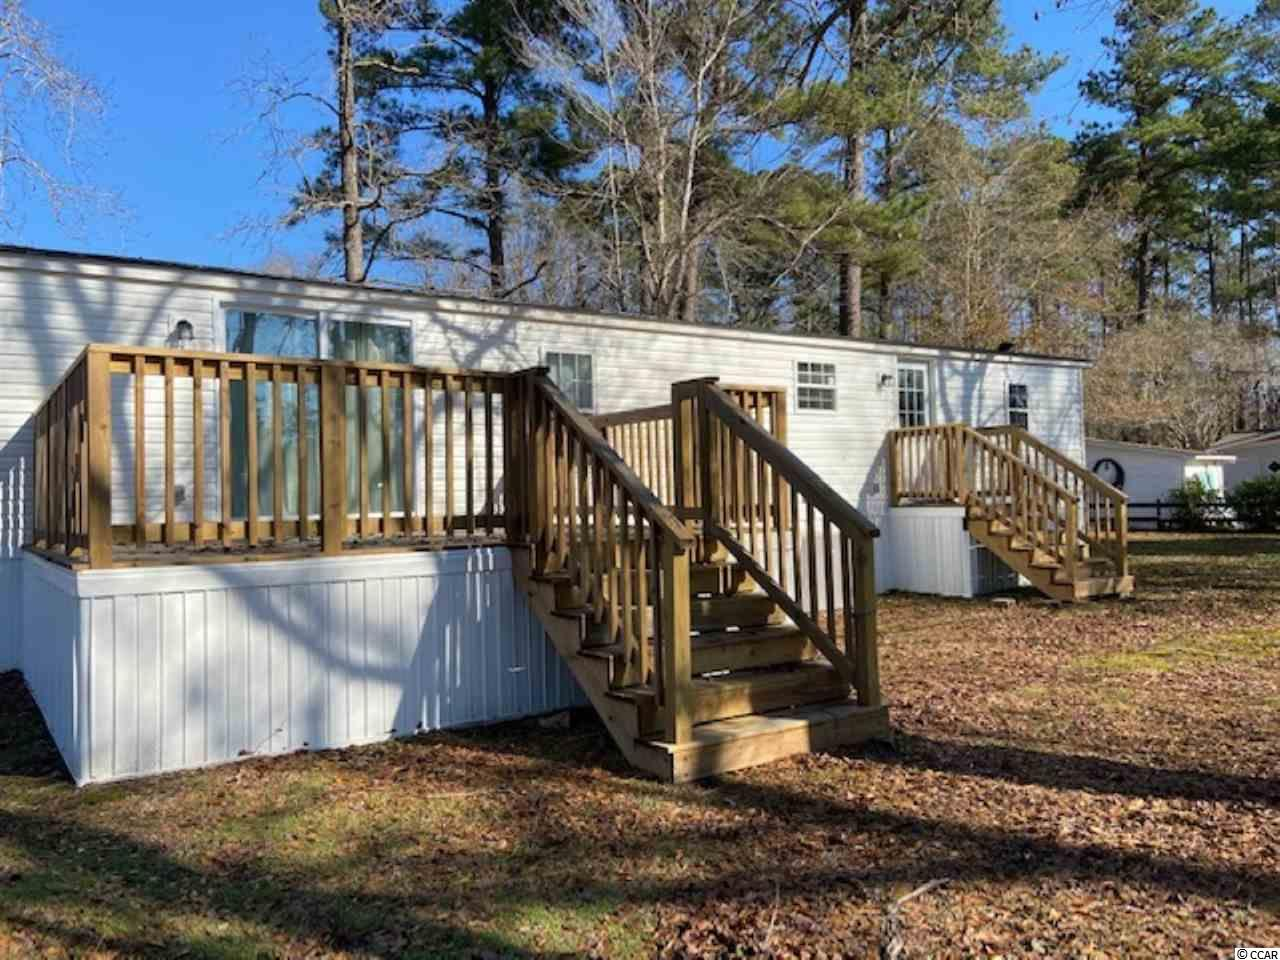 Beautiful recently renovated manufactured home situated on a great treed 1/3 acre lot .  Sit on your front or rear deck and enjoy the privacy of your yard. Over 1500 sf of living space with a large family room with a fireplace and view of the back yard and deck. Three good size bedrooms with split plan living quarters for guests. New stainless steel appliances, upgraded countertops & kitchen cabinets.  All new floors with plenty of closet space for storage, laundry room off kitchen with hookups. This quiet neighborhood is a few miles outside of the historic town of Conway and not far from the beach, shopping and amusements. This is a great getaway for your family vacations.  Don't miss this opportunity to own your piece of heaven!  ***Bonus - Seller purchased in June 2020 and paid land lease through July 2021 which will be transferred to new owner at closing by owner of Williamson Park.  Great location outside of downtown Conway close to the beach and amusements.